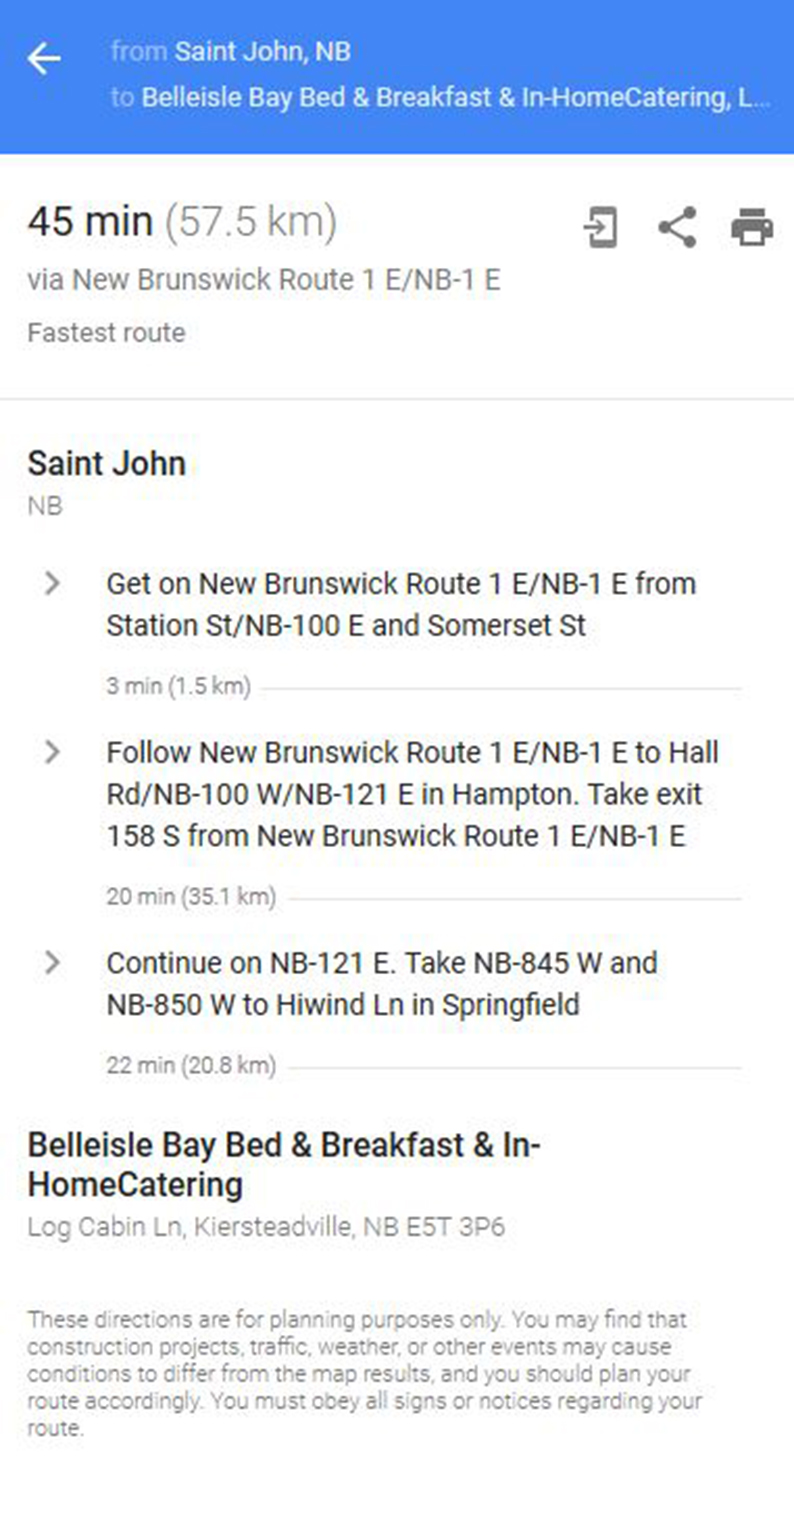 saint john to belleisle bay bed and breakfast